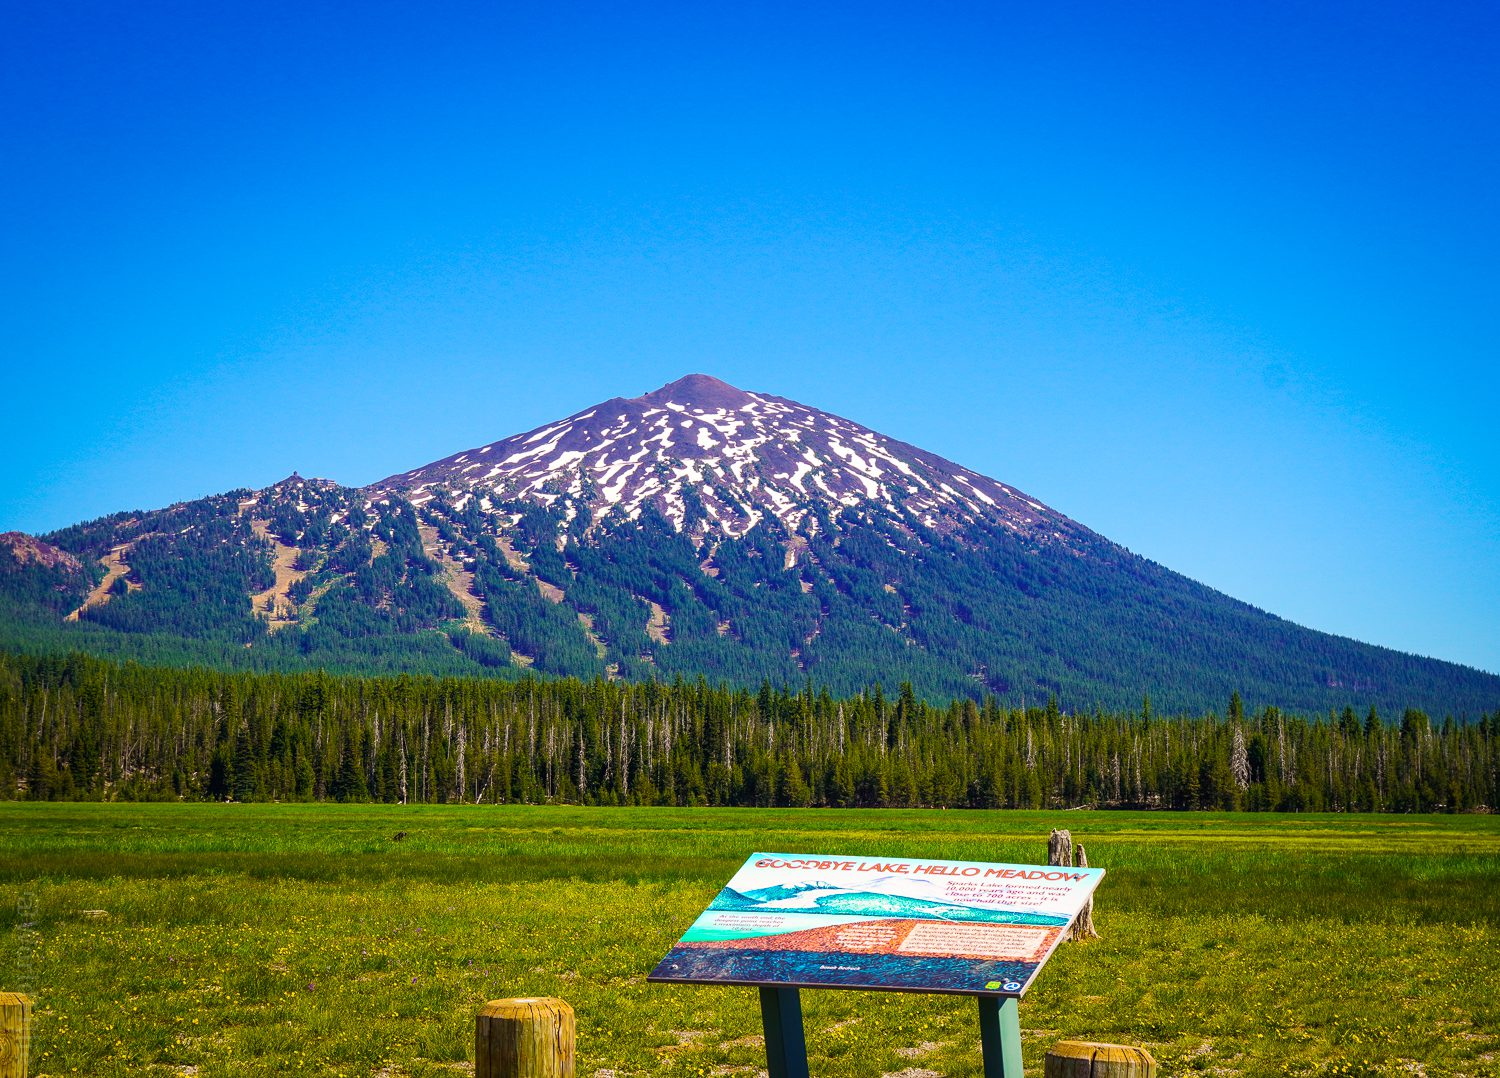 The meadow by Mount Bachelor.